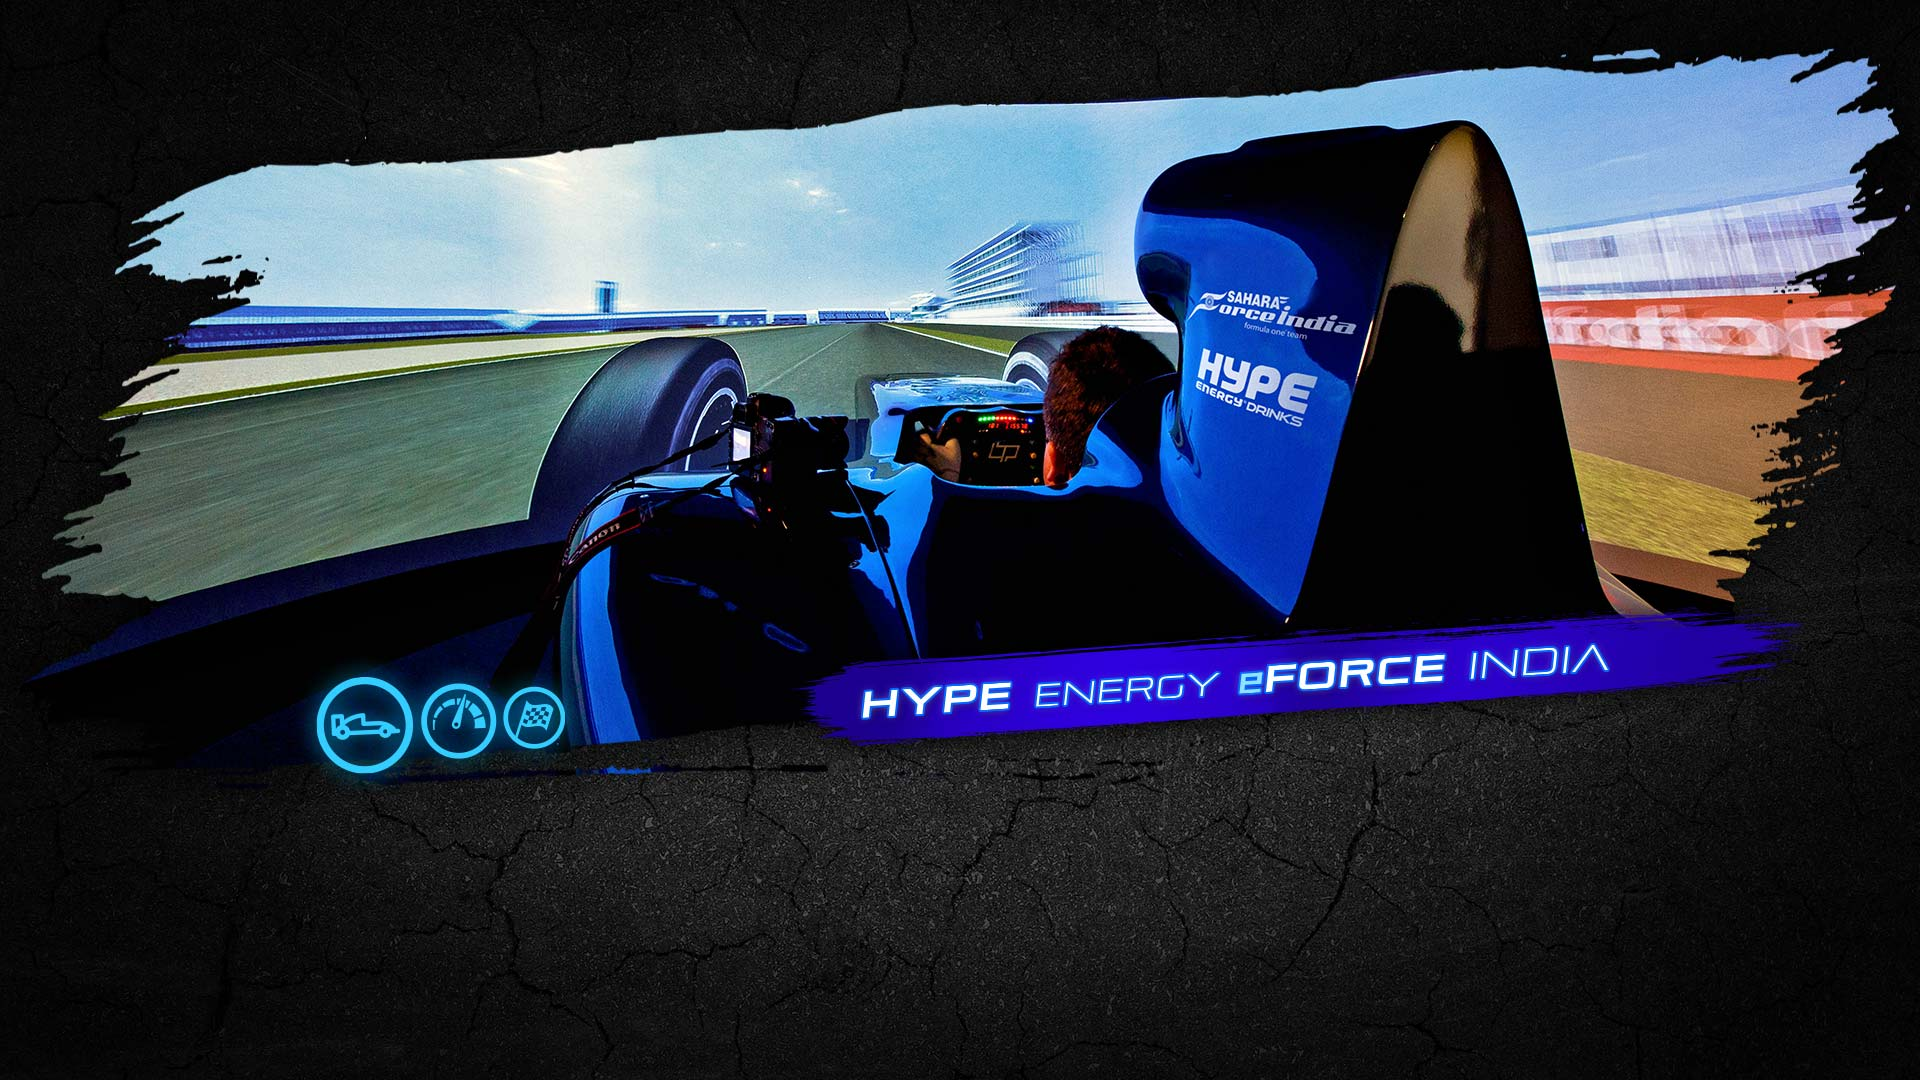 Hype Energy eForce India Banner